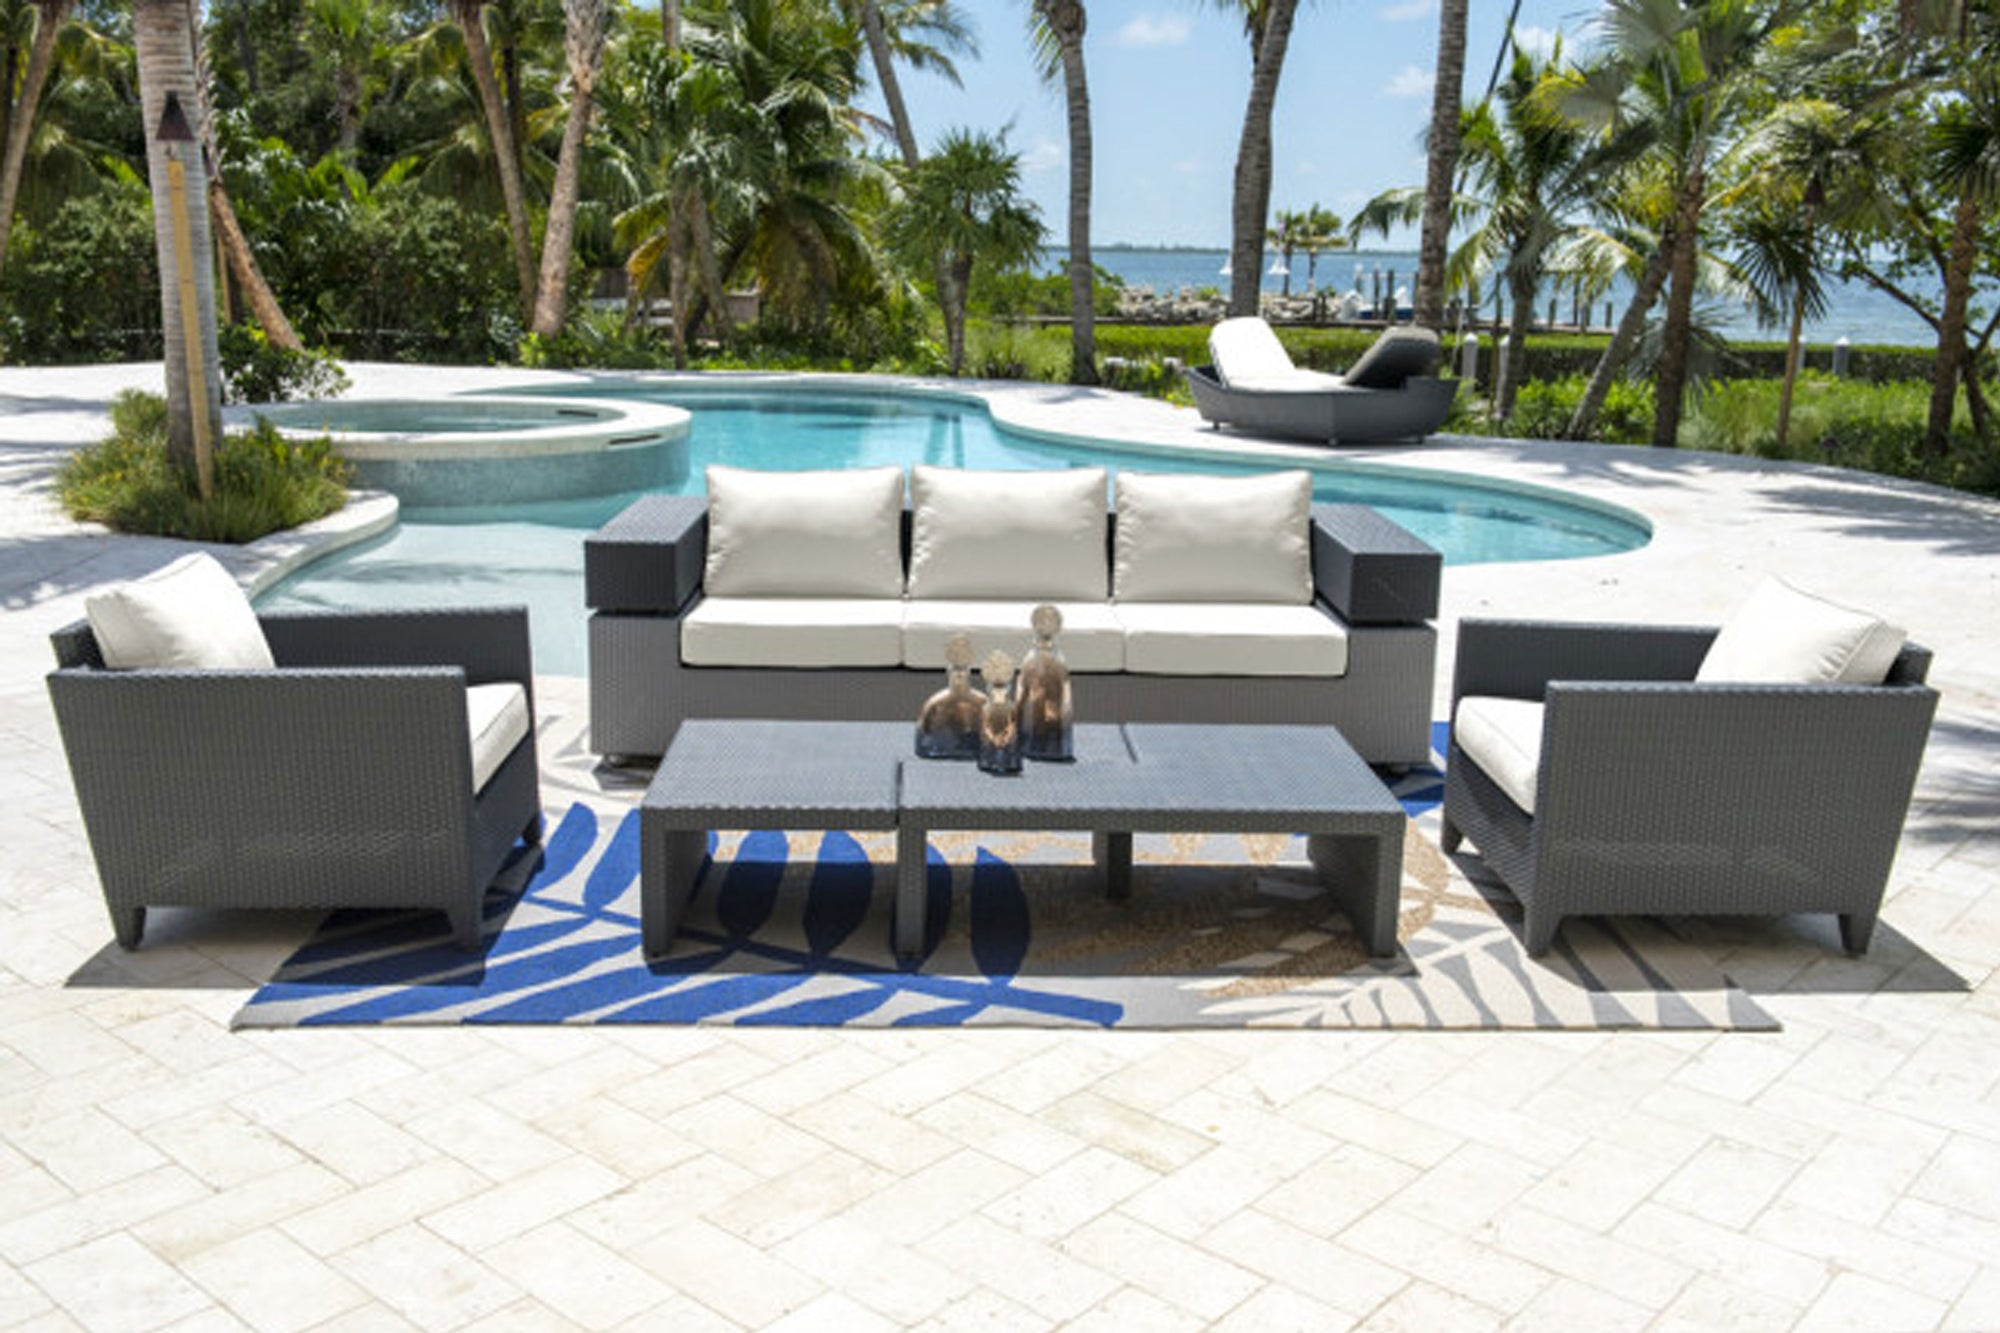 Onyx 5 PC Seating Set w/off-white cushions